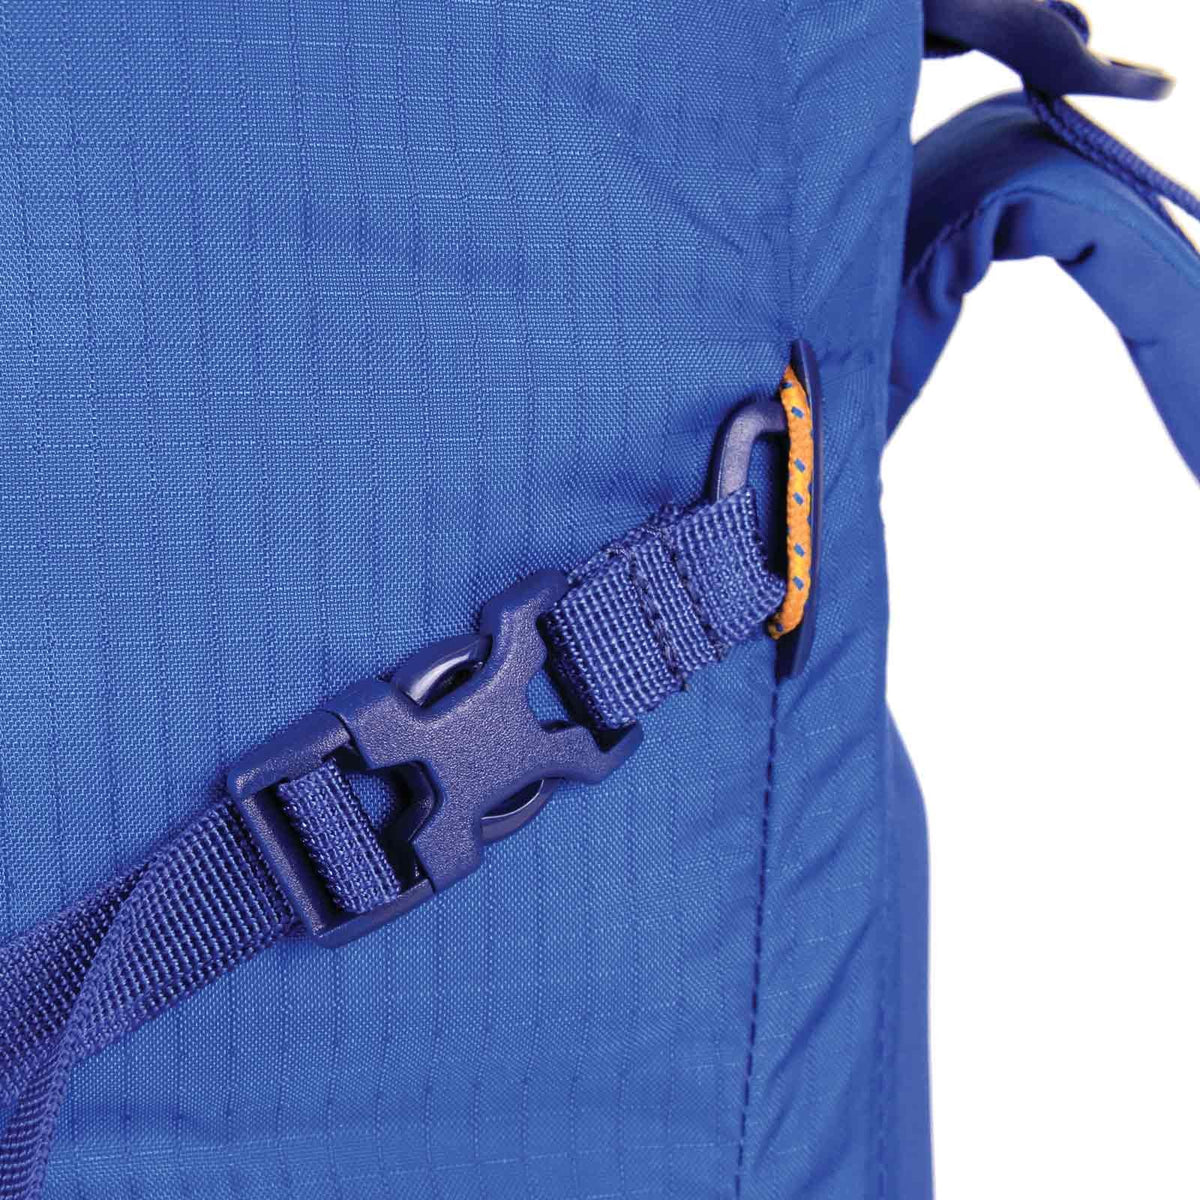 Blue Ice Warthog 30L rucksack in Blue showing the removable side compression strap